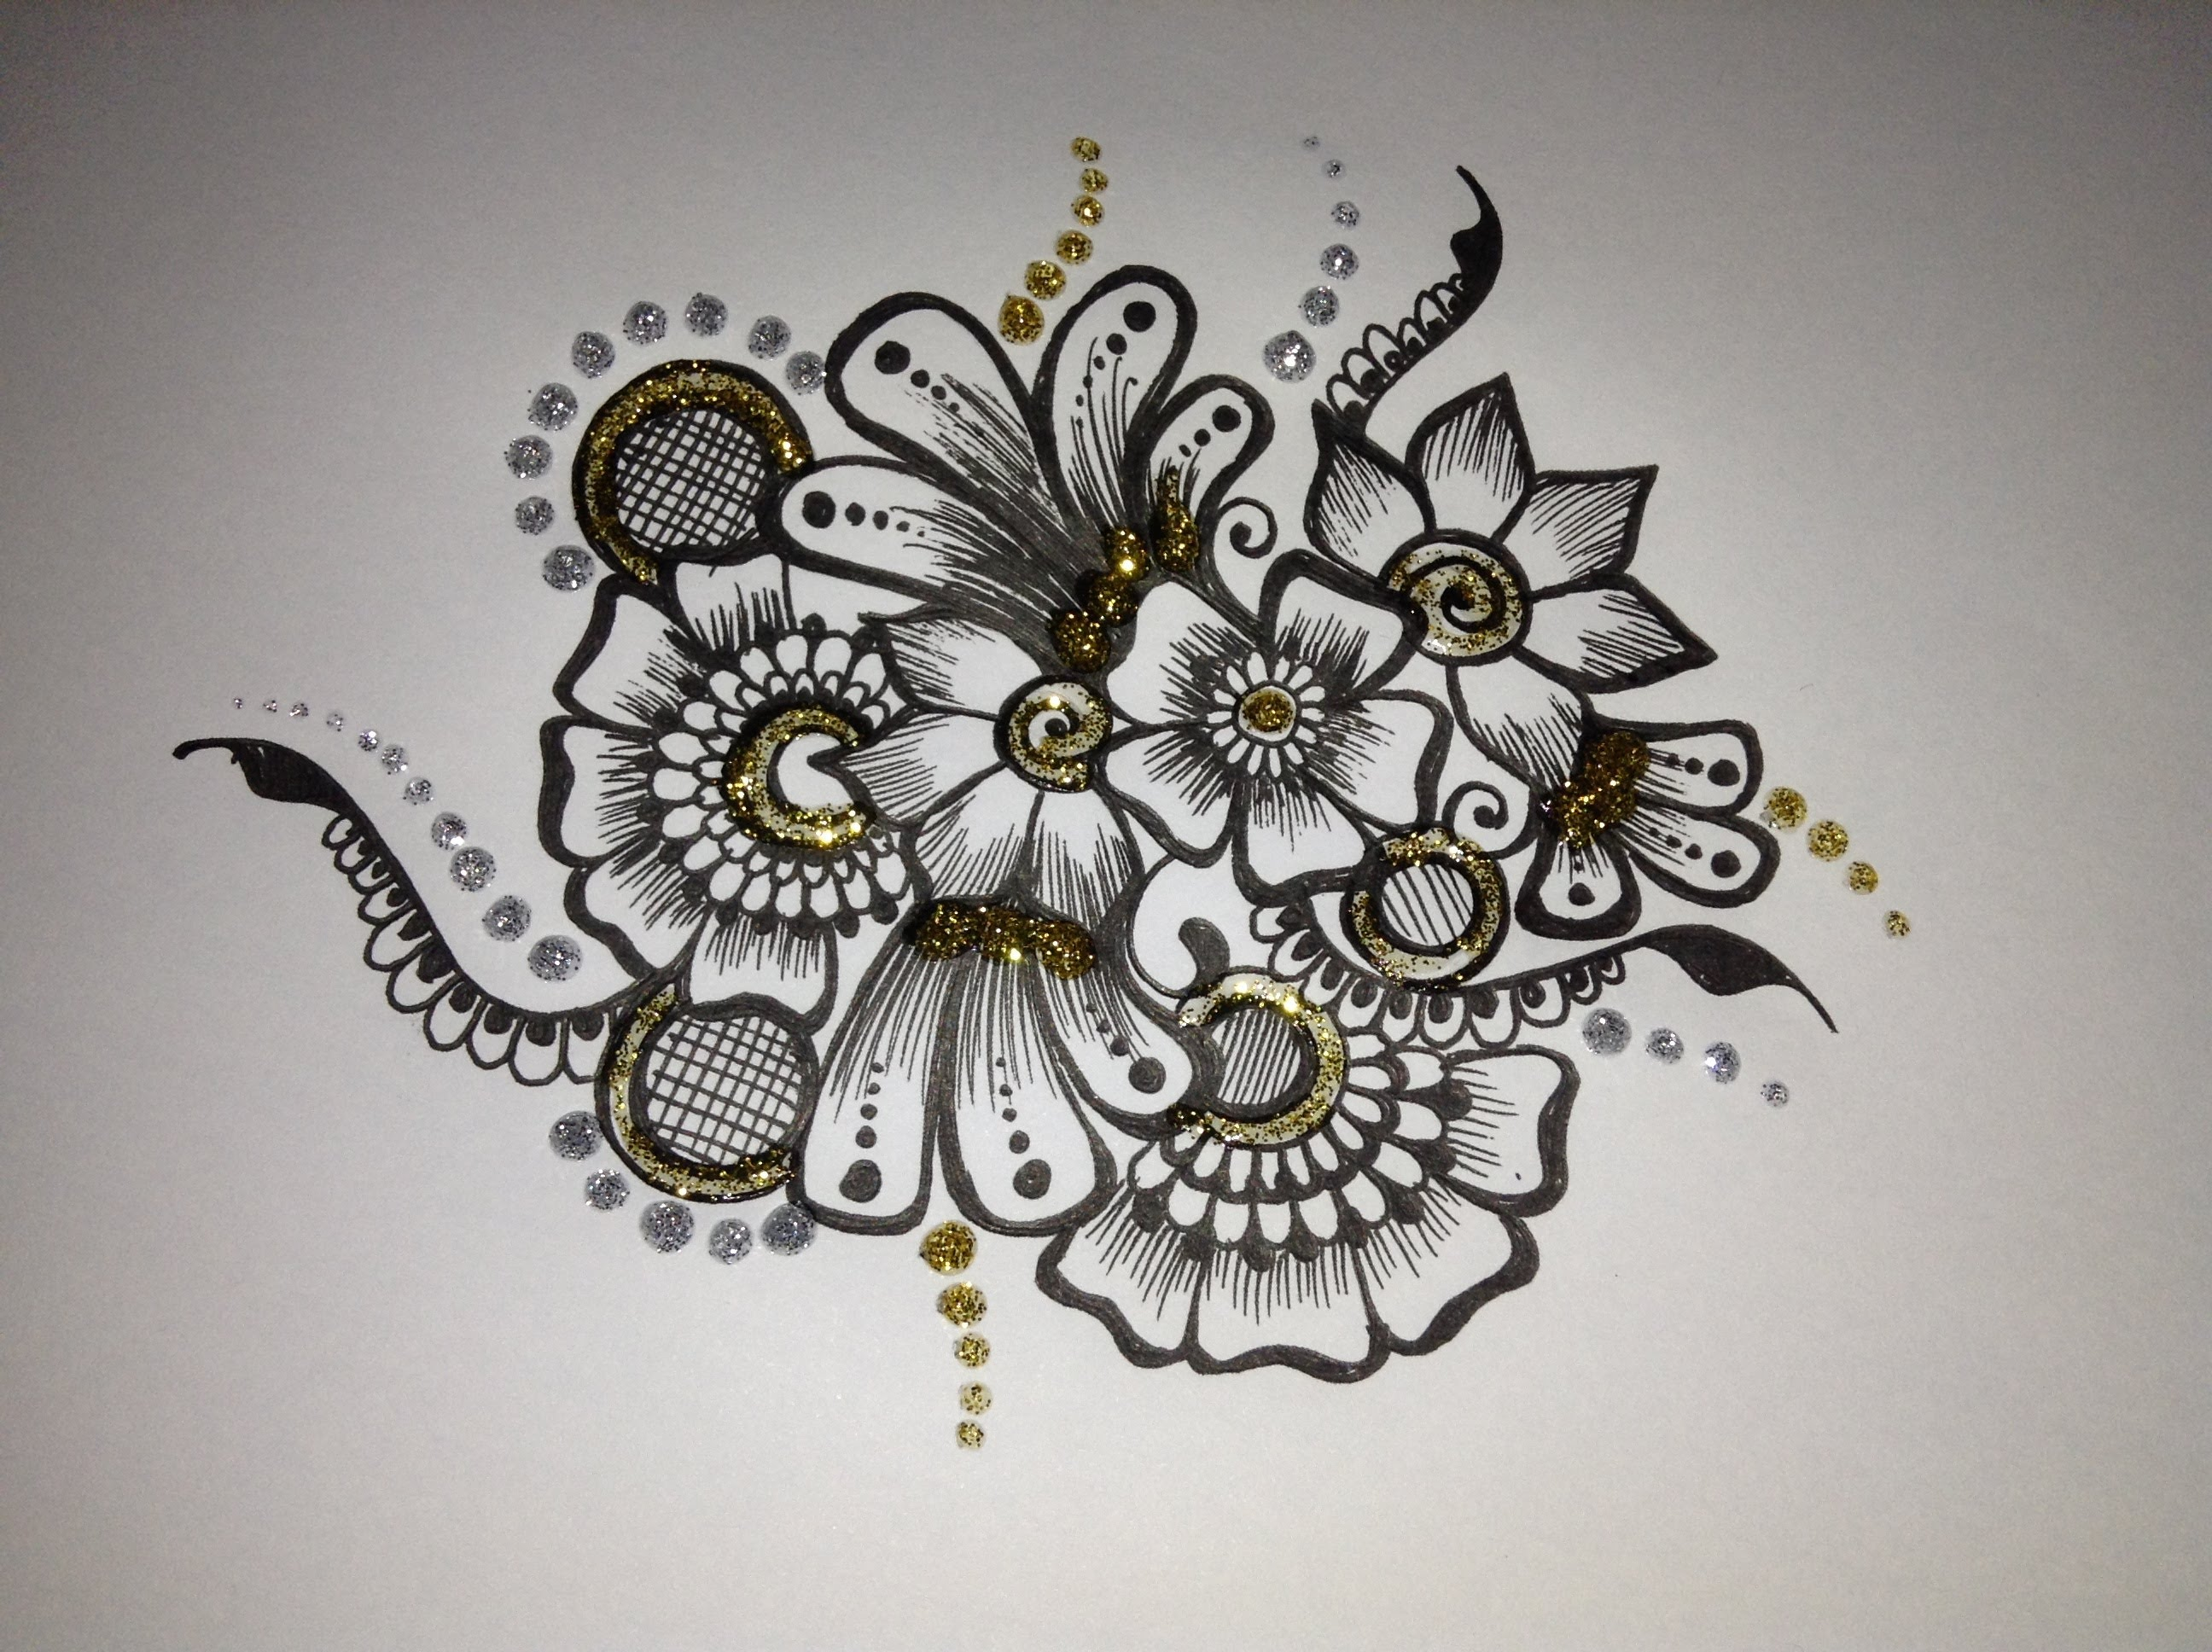 Drawn mehndi sketch Flower Mehndi motif drawing: motif